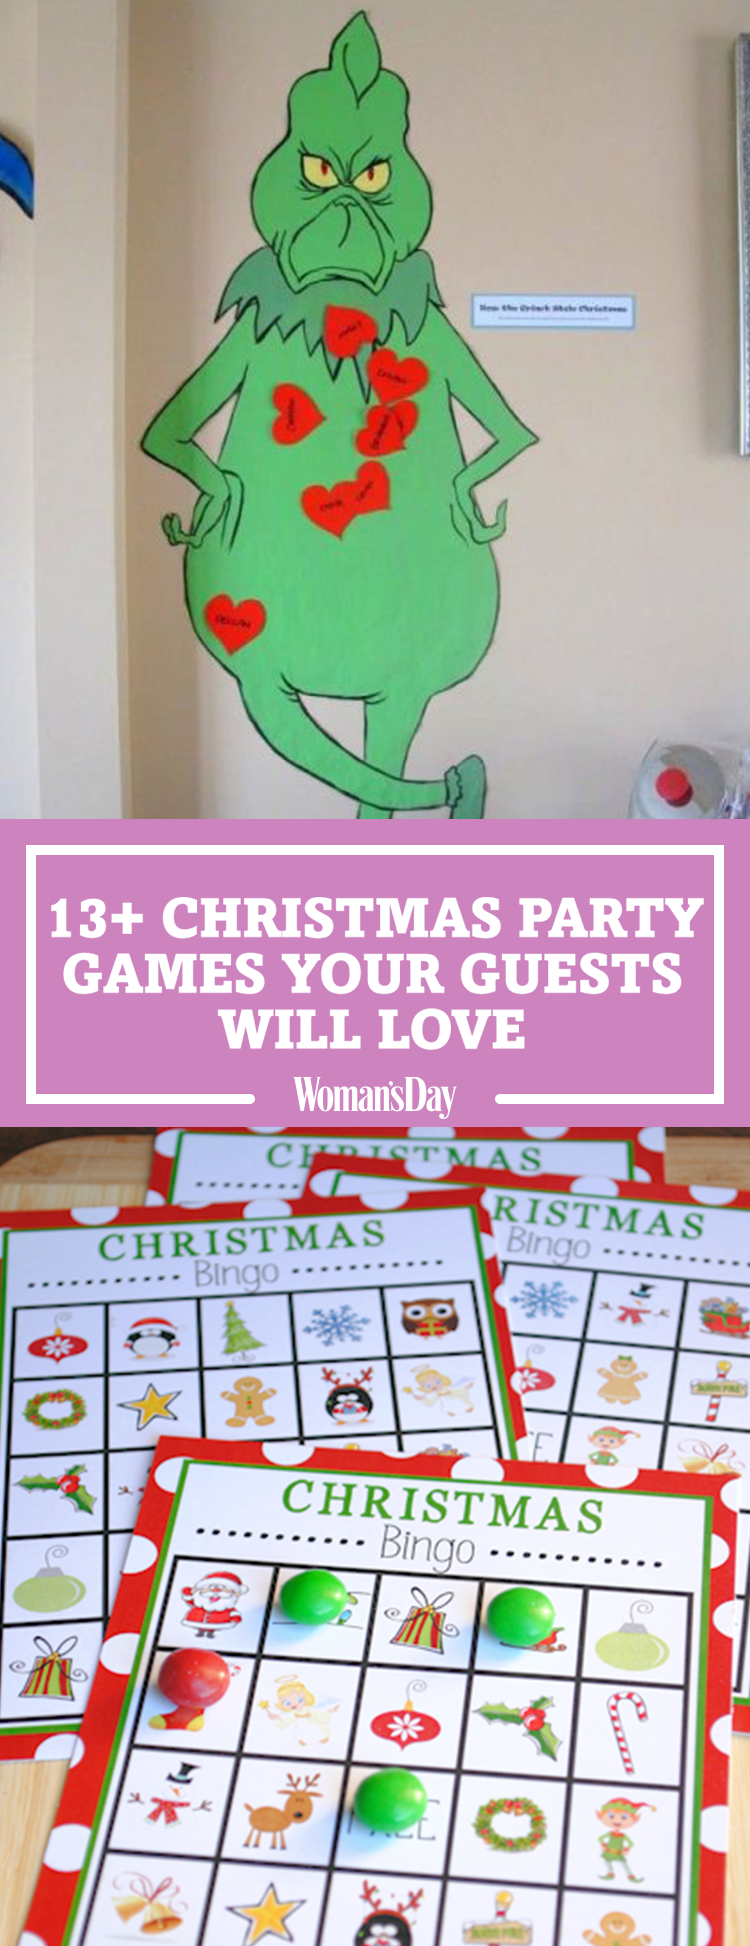 79 best Winter party ideas images on Pinterest | Natal, Christmas ...